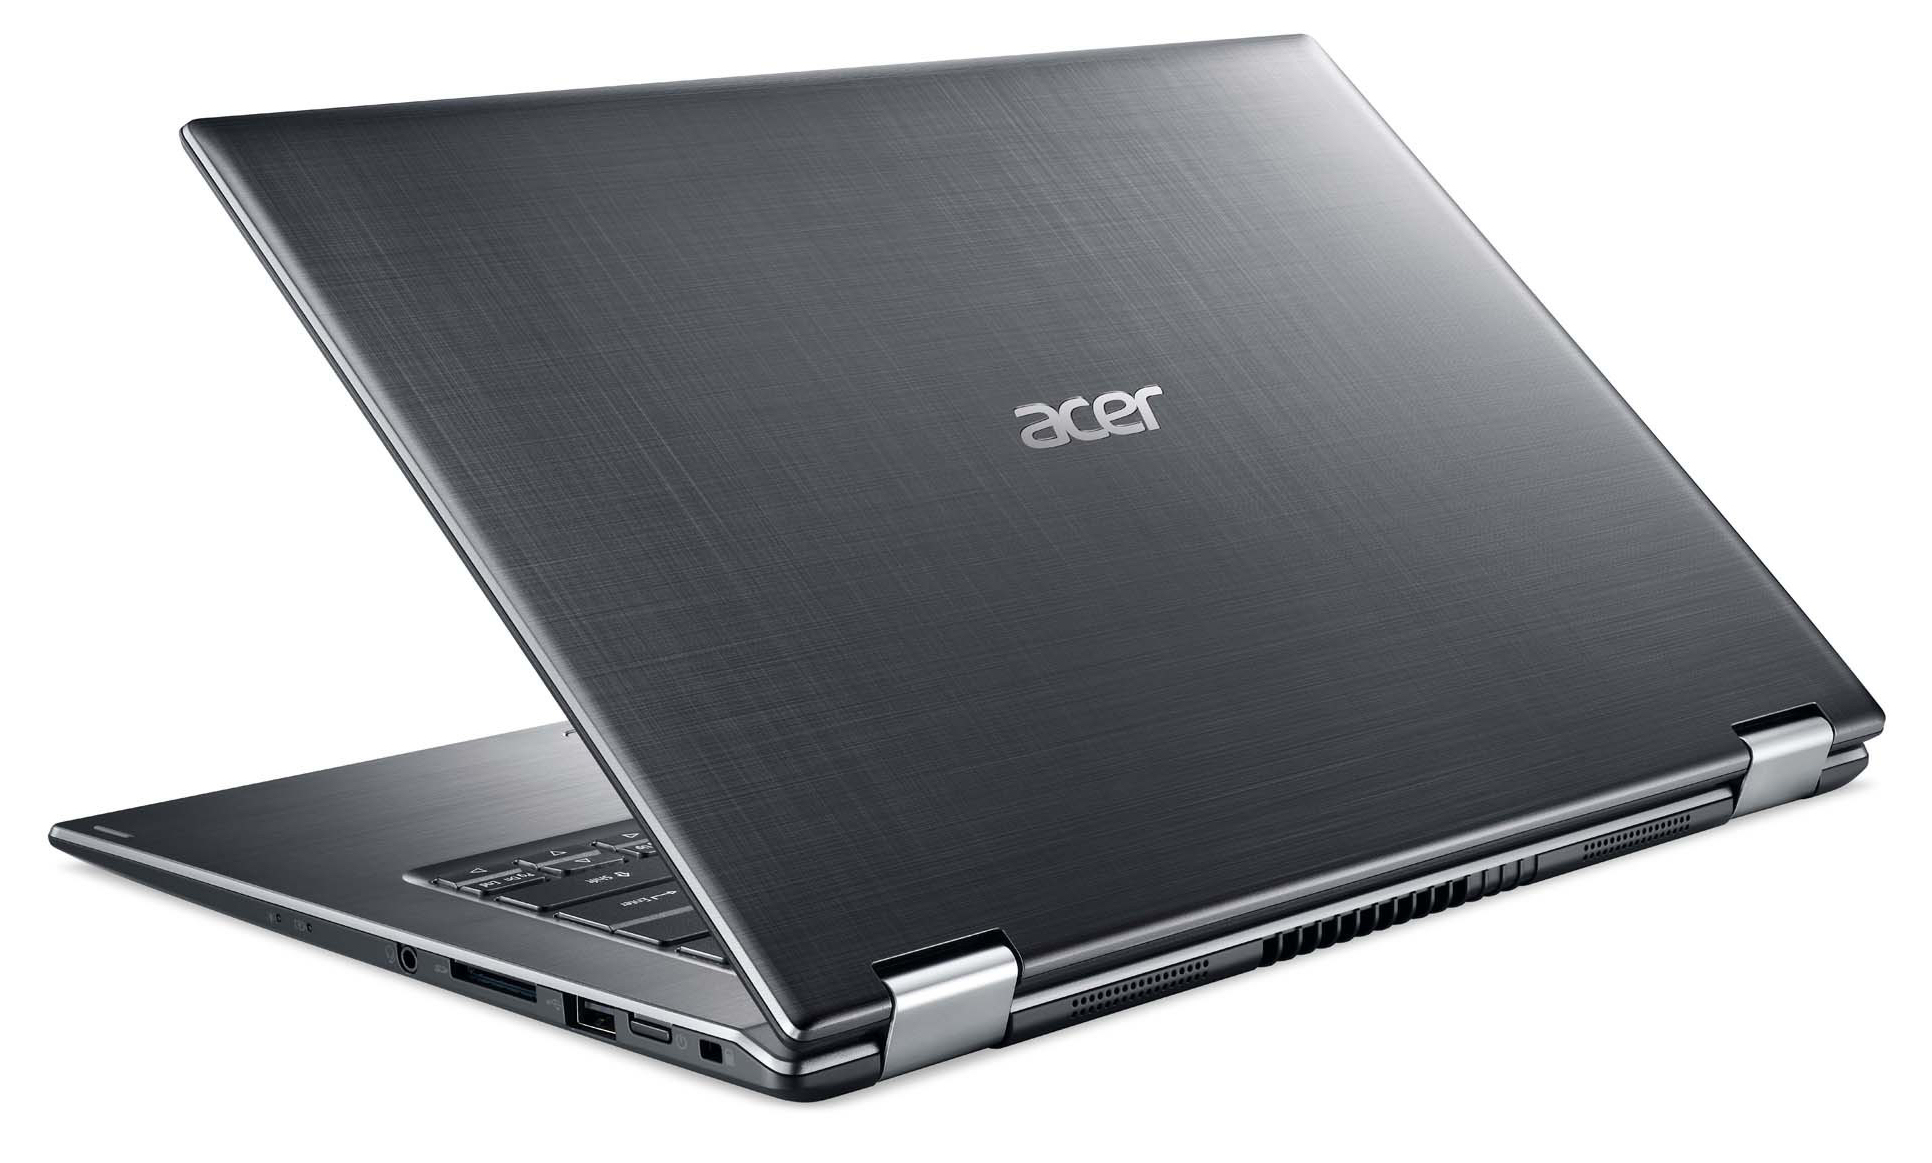 bf904695f4b5e Acer Spin 3 SP314-51 (i5-8250U, SSD, FHD) Convertible Review ...